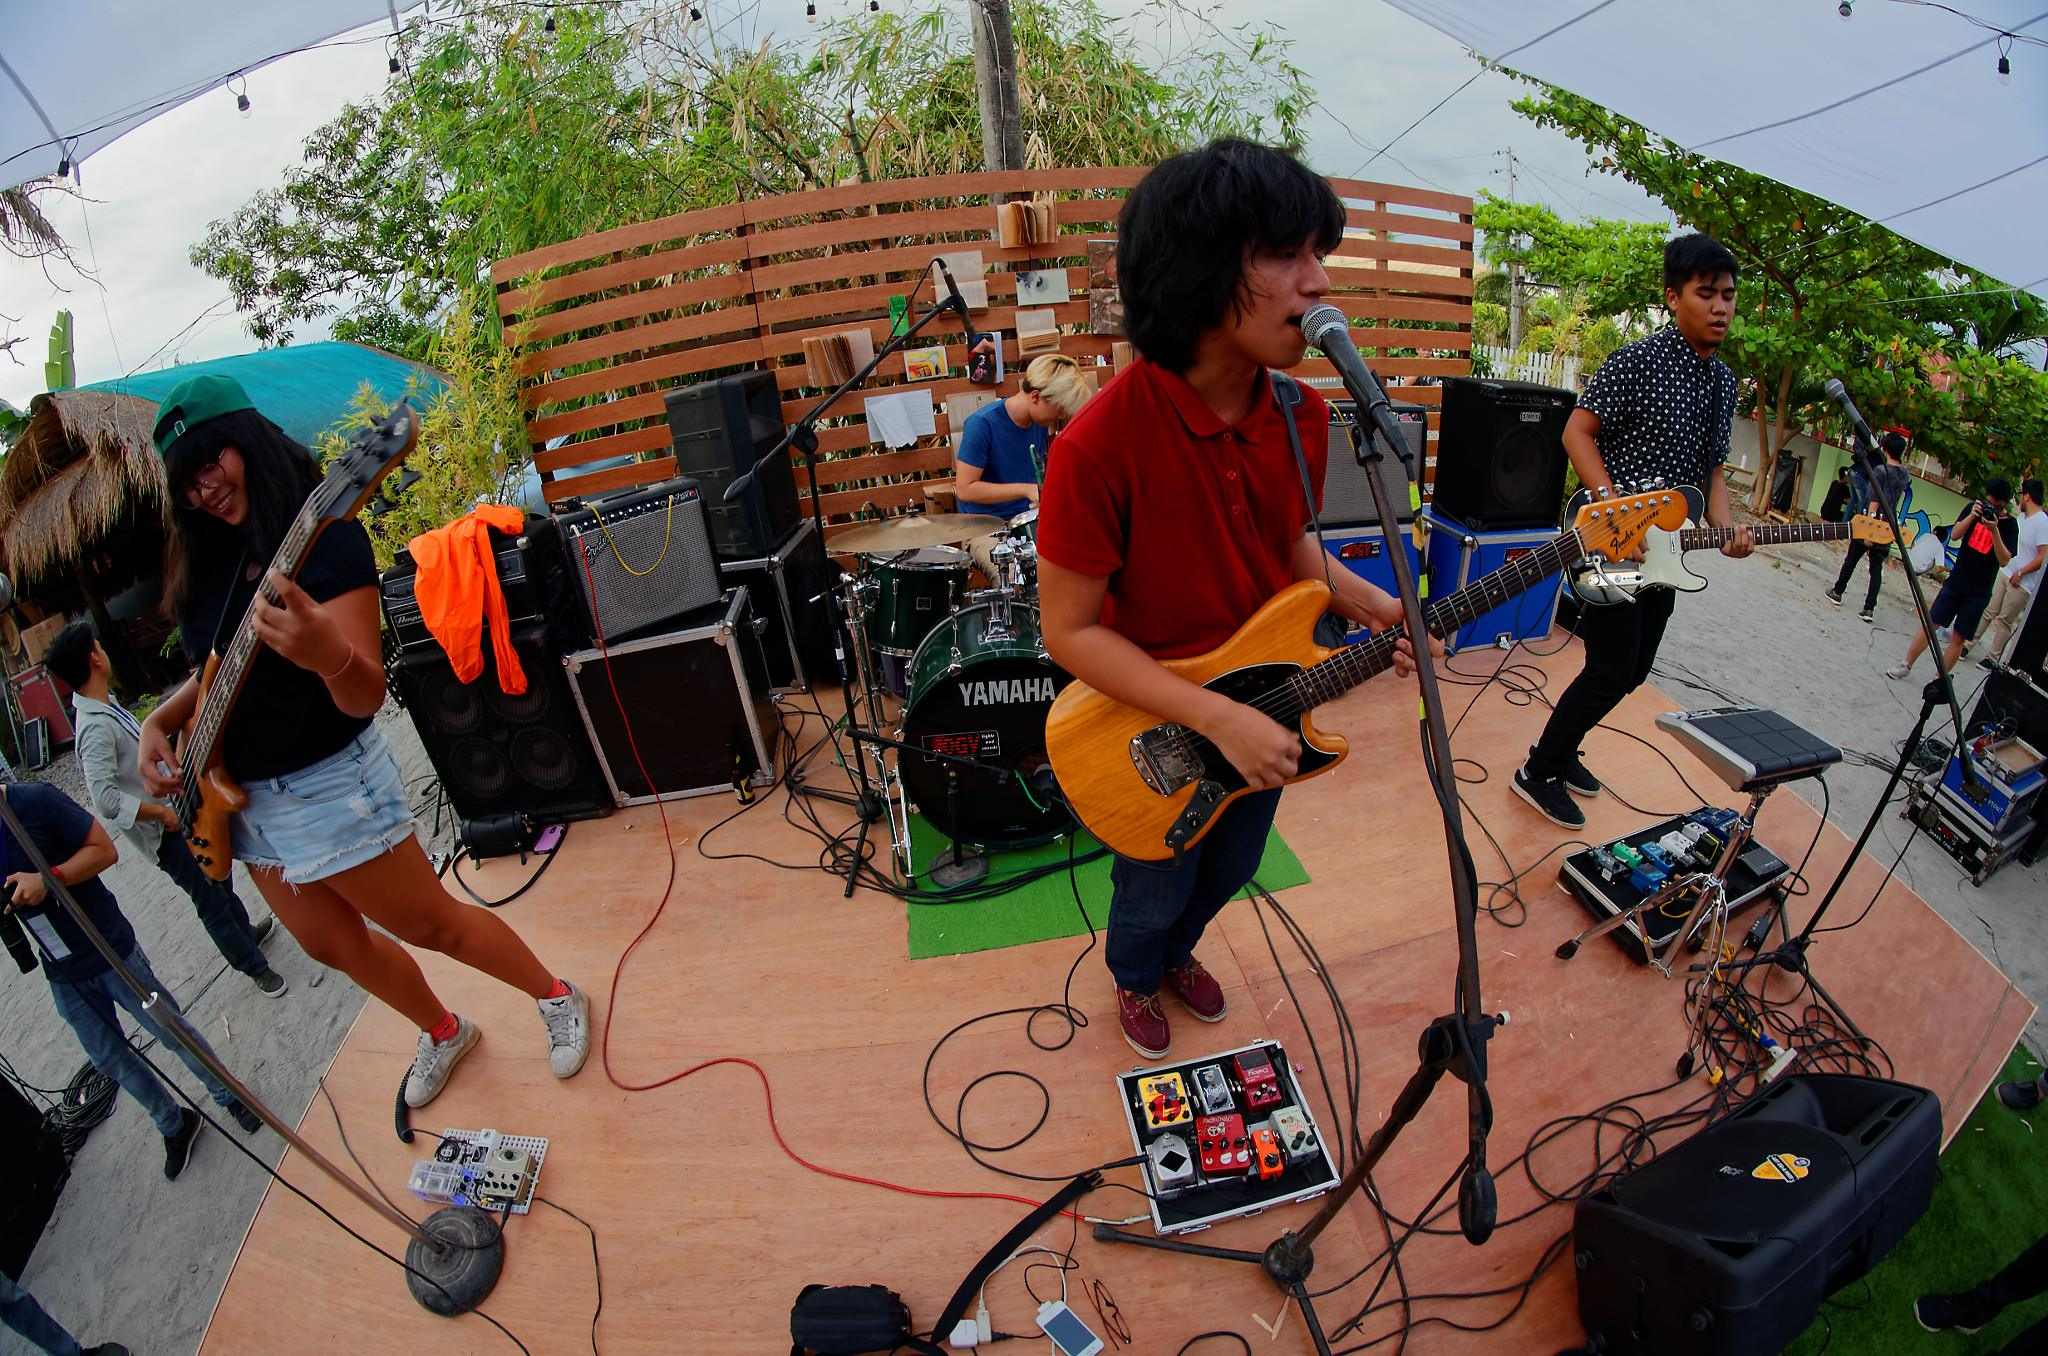 Scout Friday Picks: Howard Luistro of Oh, Flamingo!